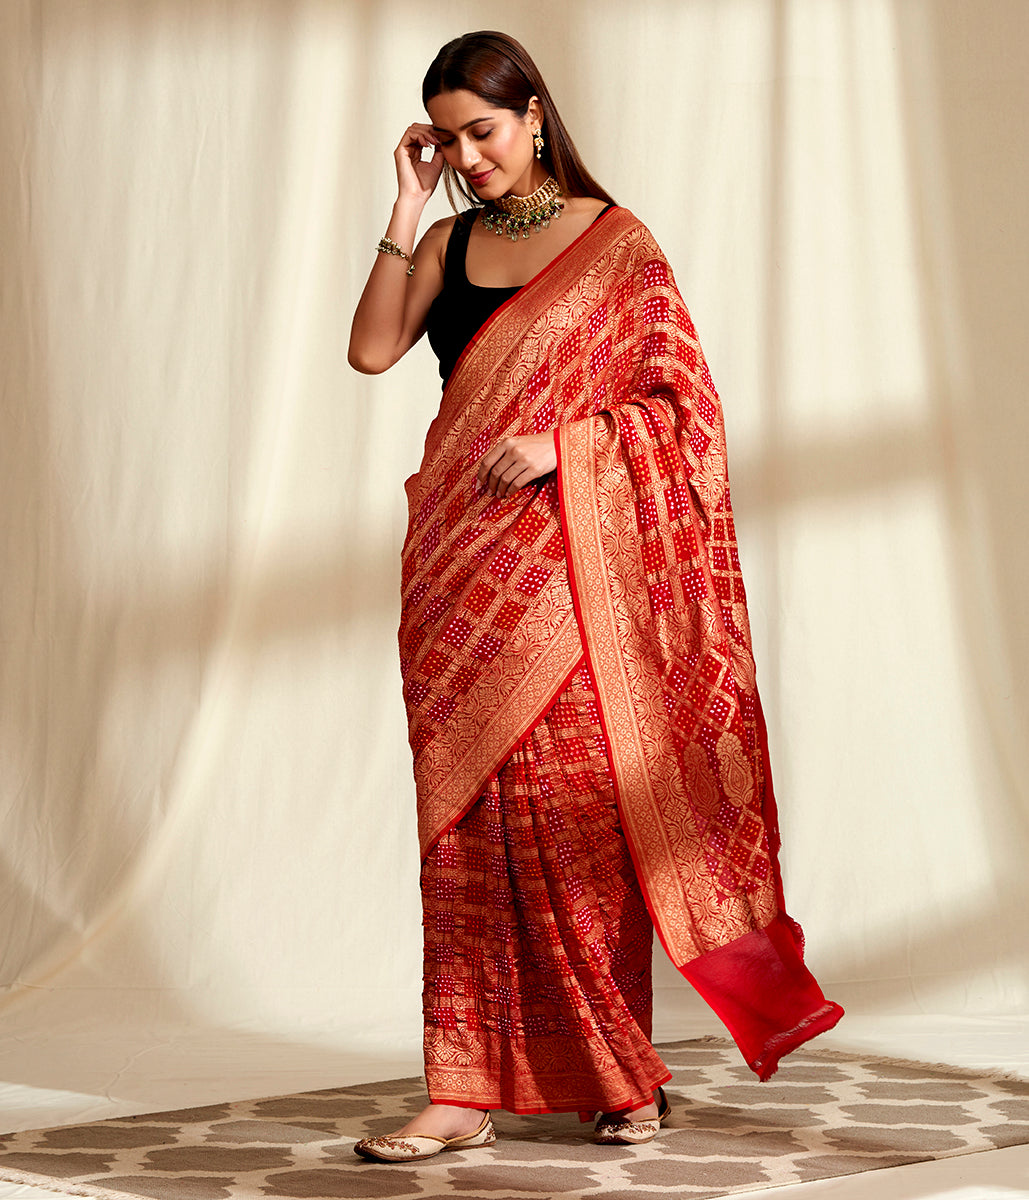 Handwoven Banarasi Bandhej Saree in Red with Gold Zari Checks